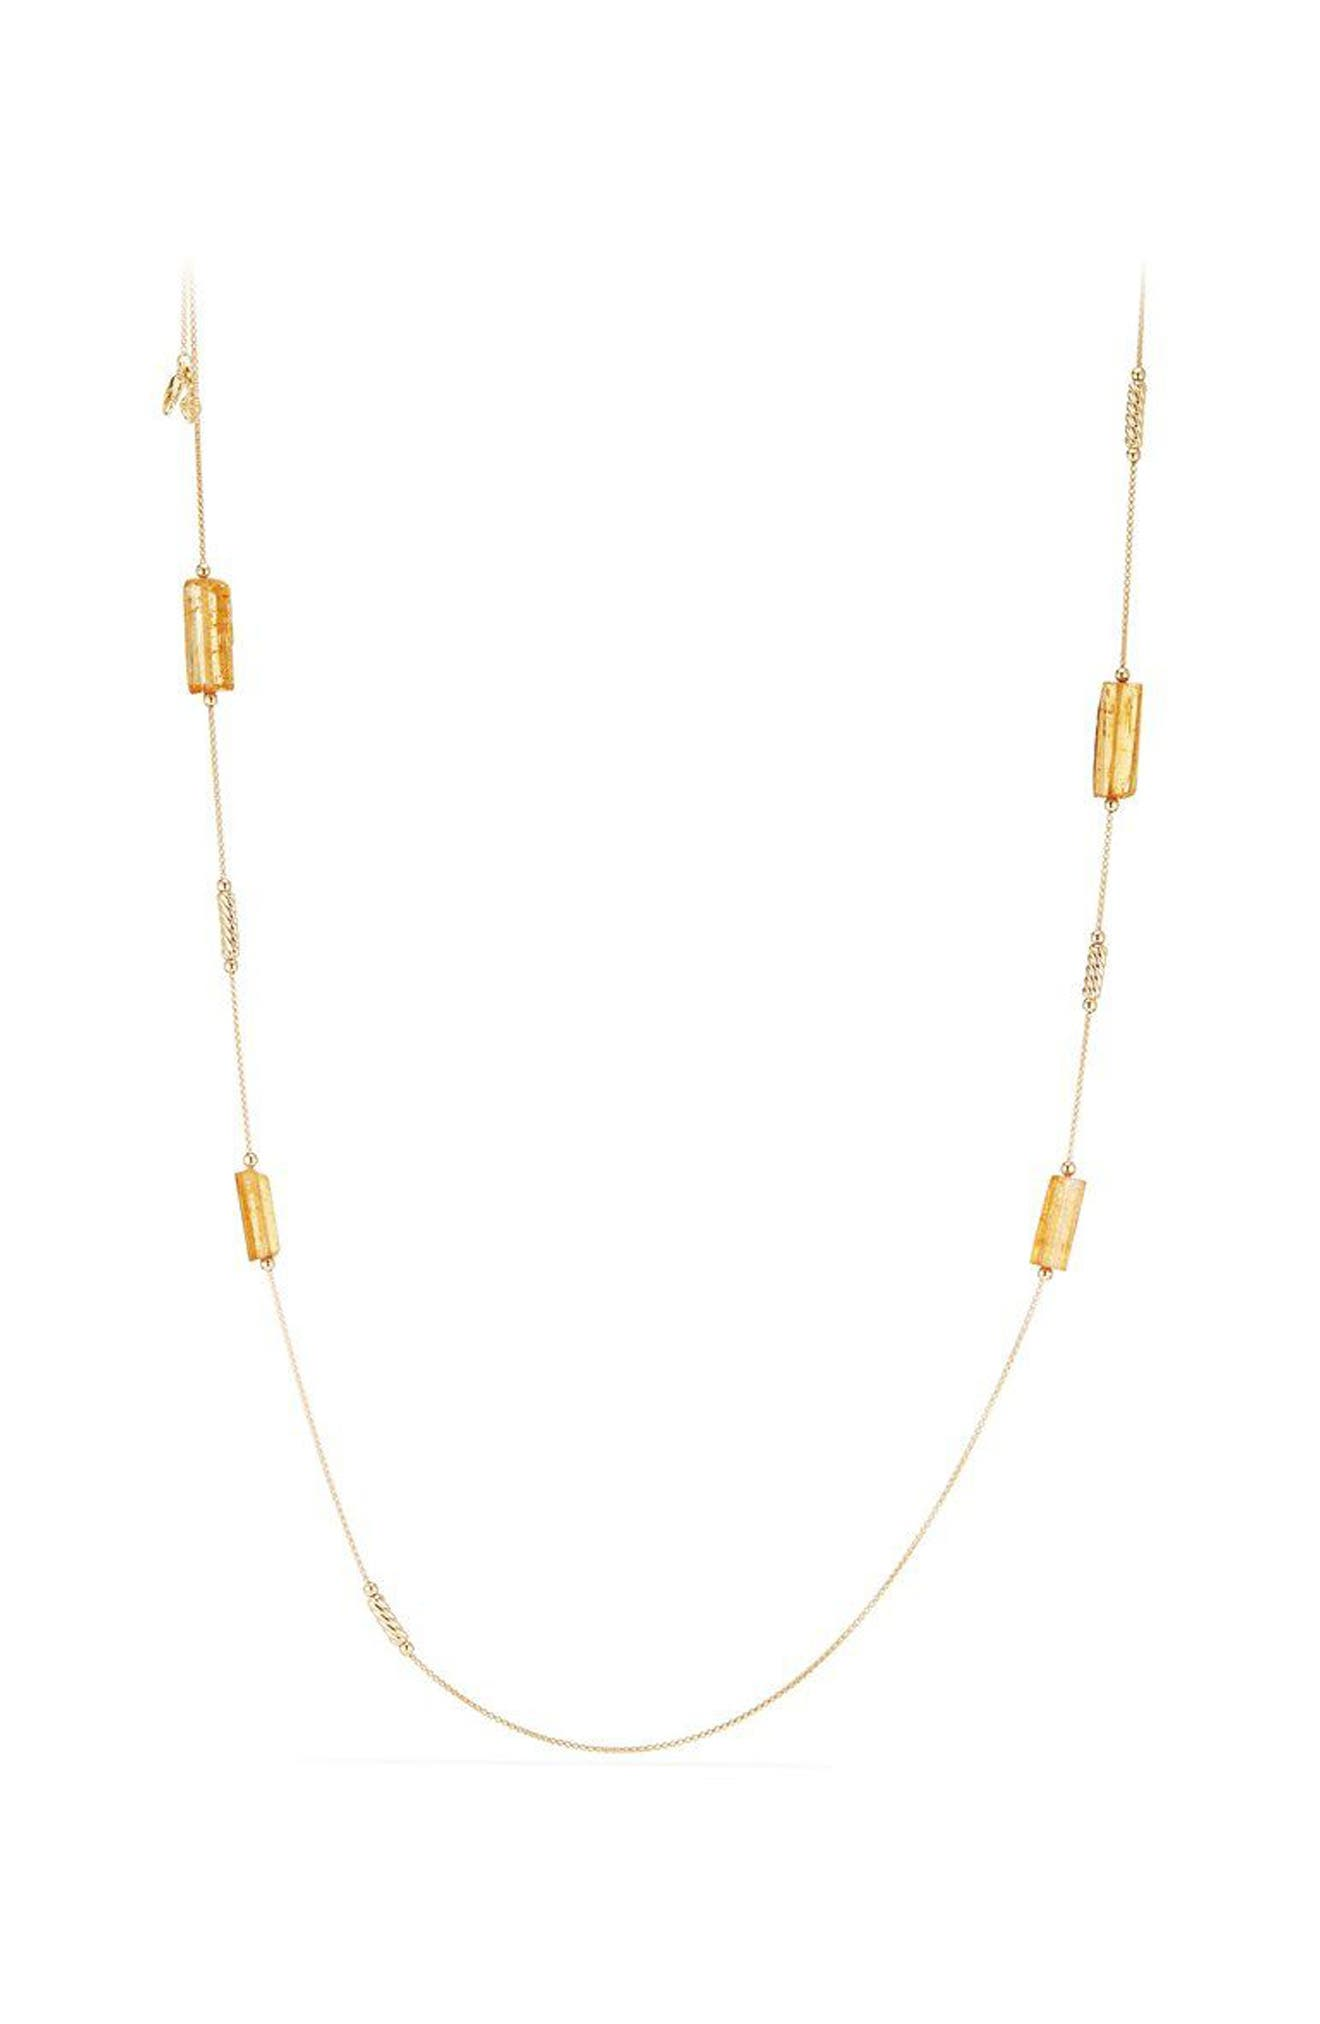 Fine Bead Imperial Topaz Chain Necklace,                         Main,                         color, Gold/ Imperial Topaz